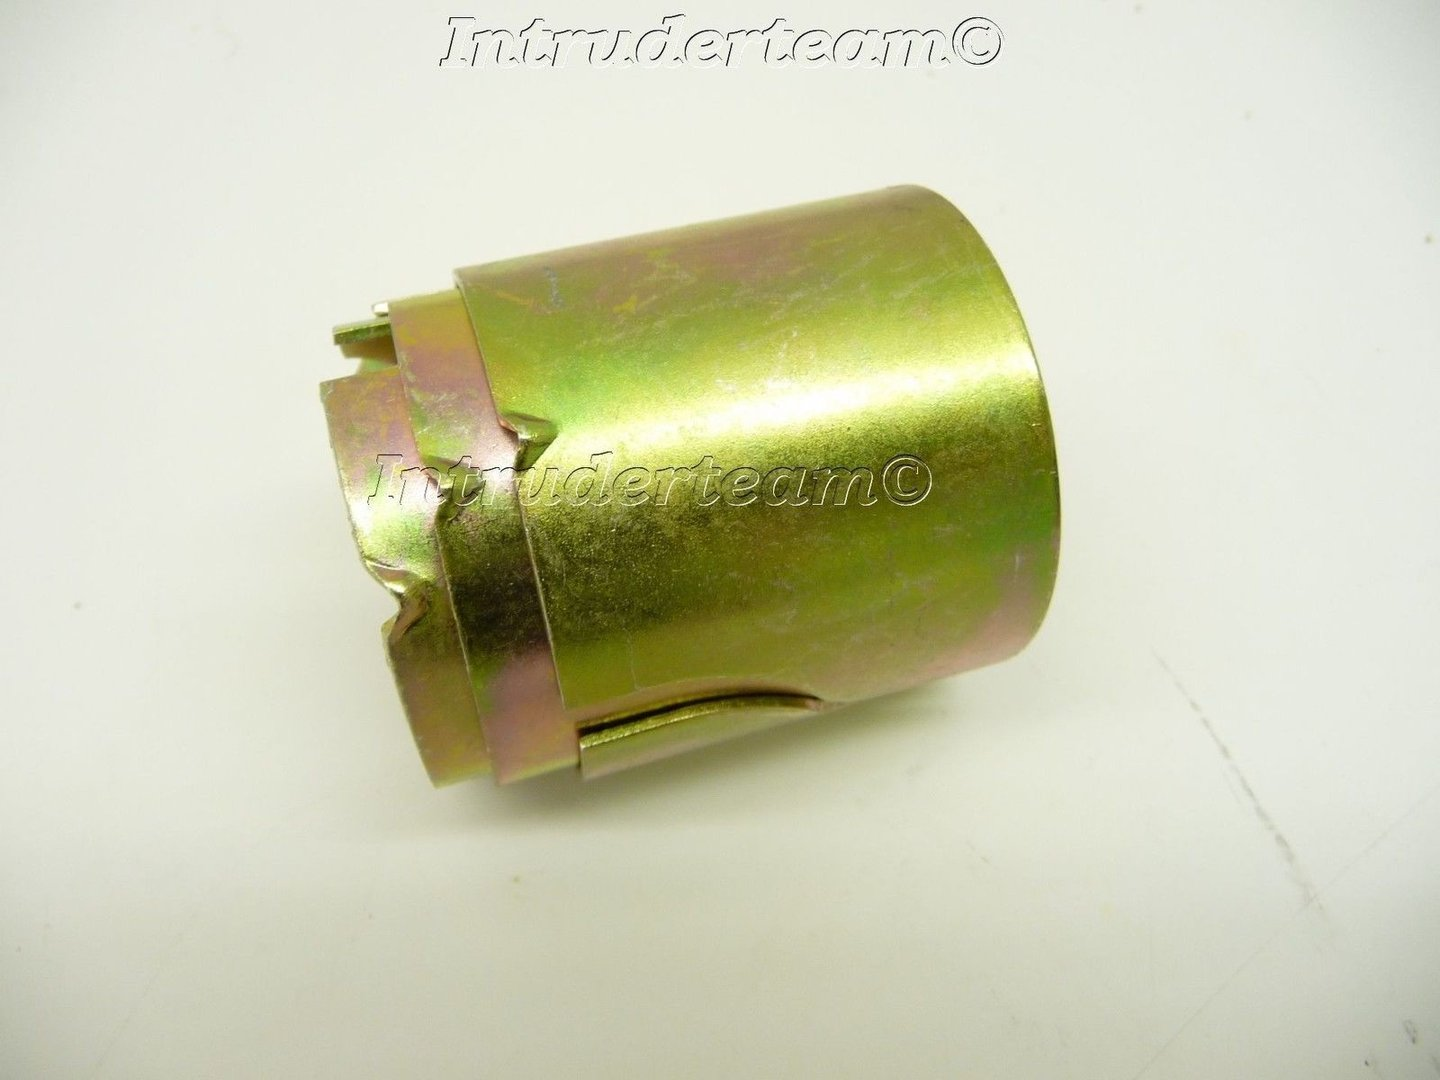 MUFFLER REDUCE SLEEVES, R-45mm to R-38mm